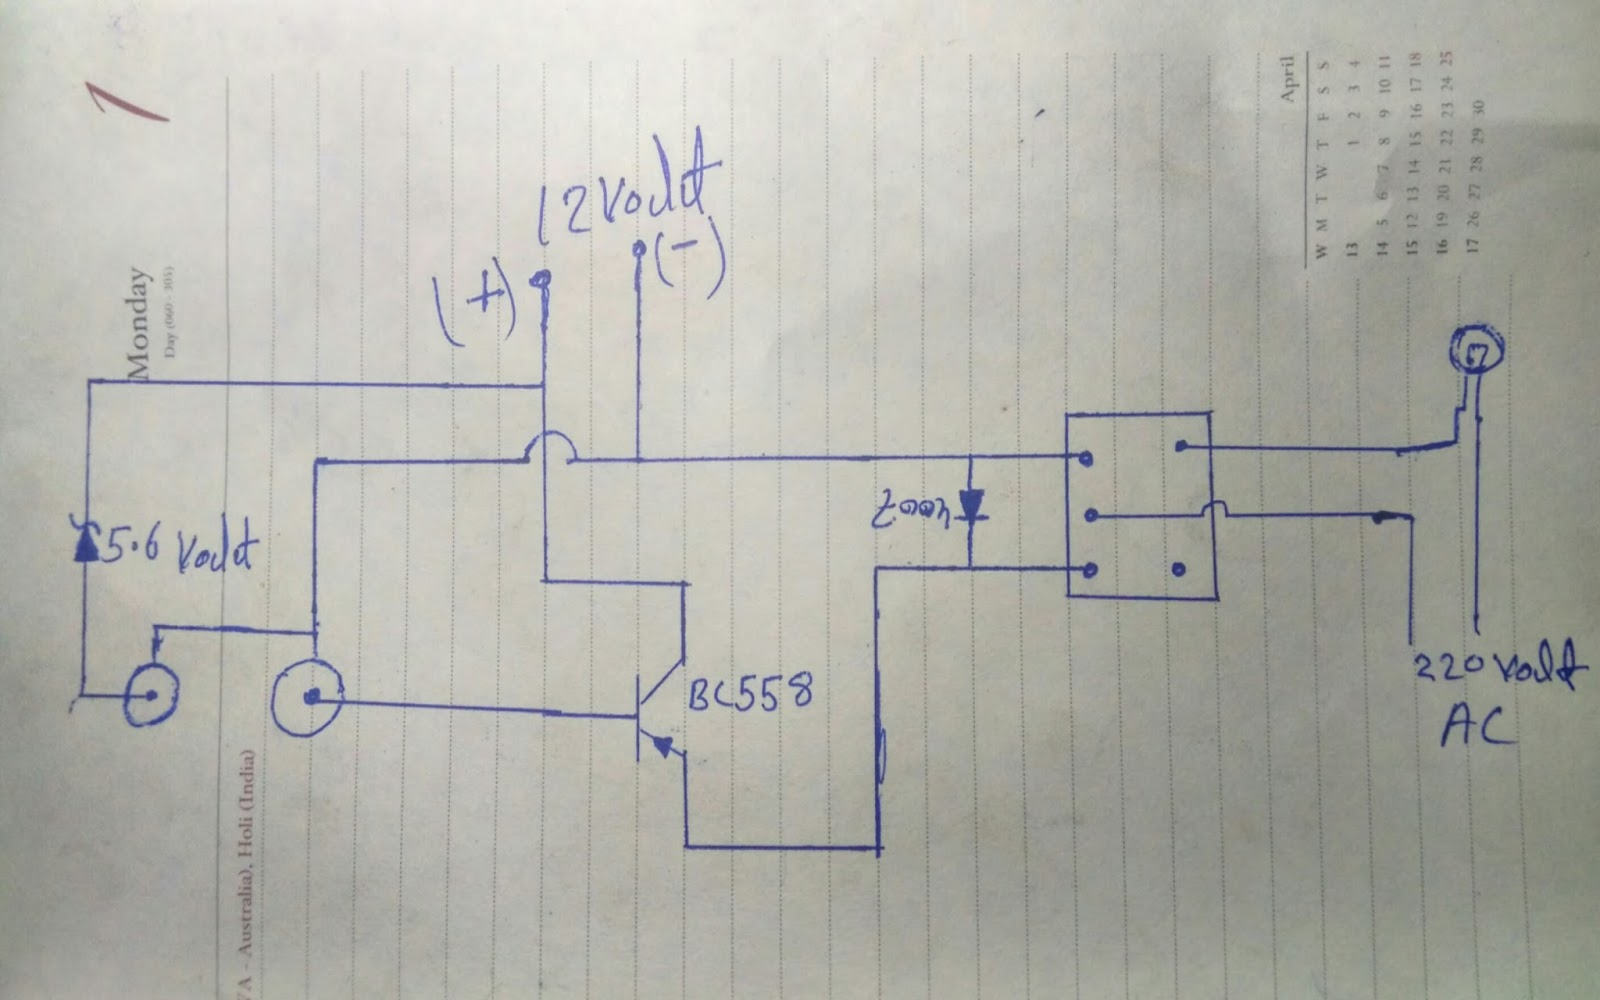 how to make push on push off Switch circuit using only Relay - Rk ...